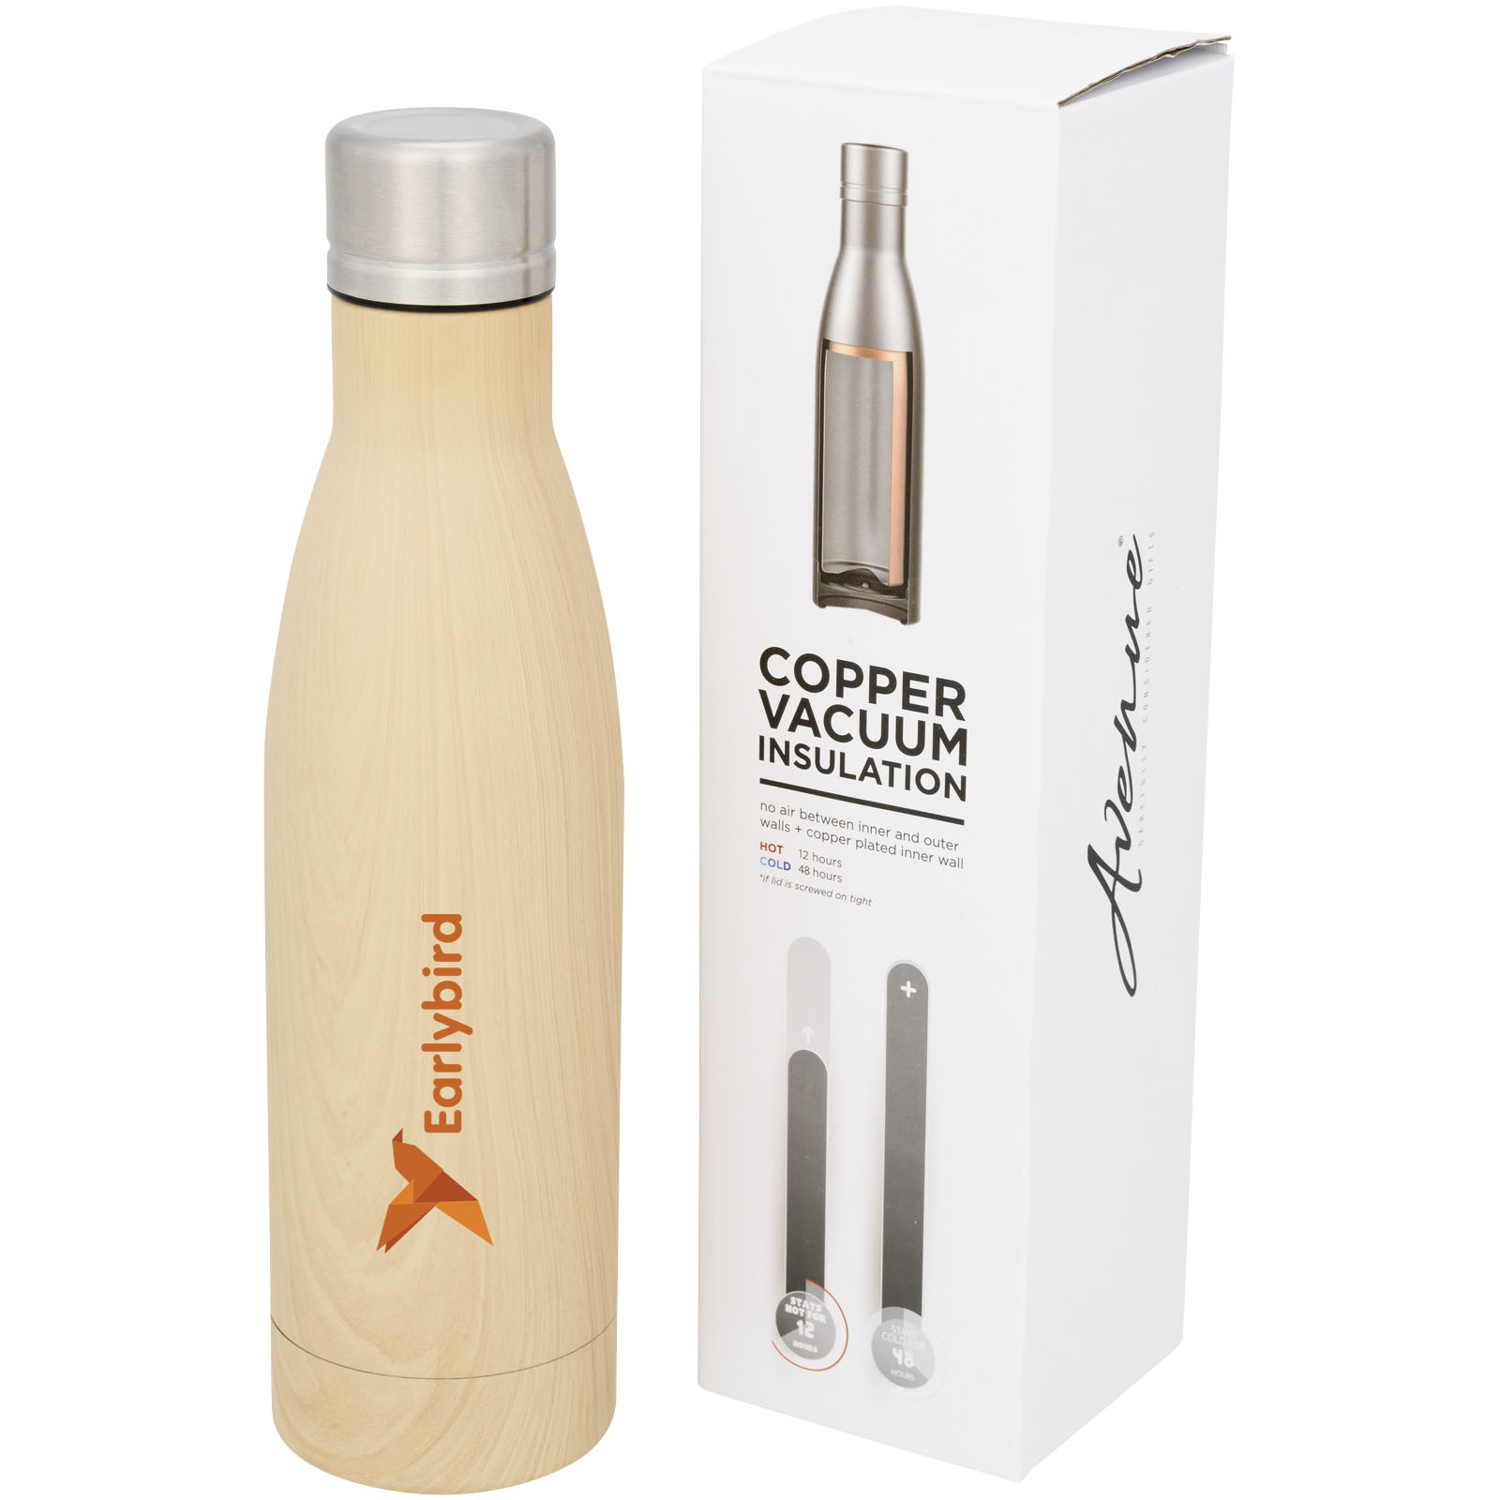 Vasa 500 Ml Wood-Look Copper Vacuum Insulated Bottle